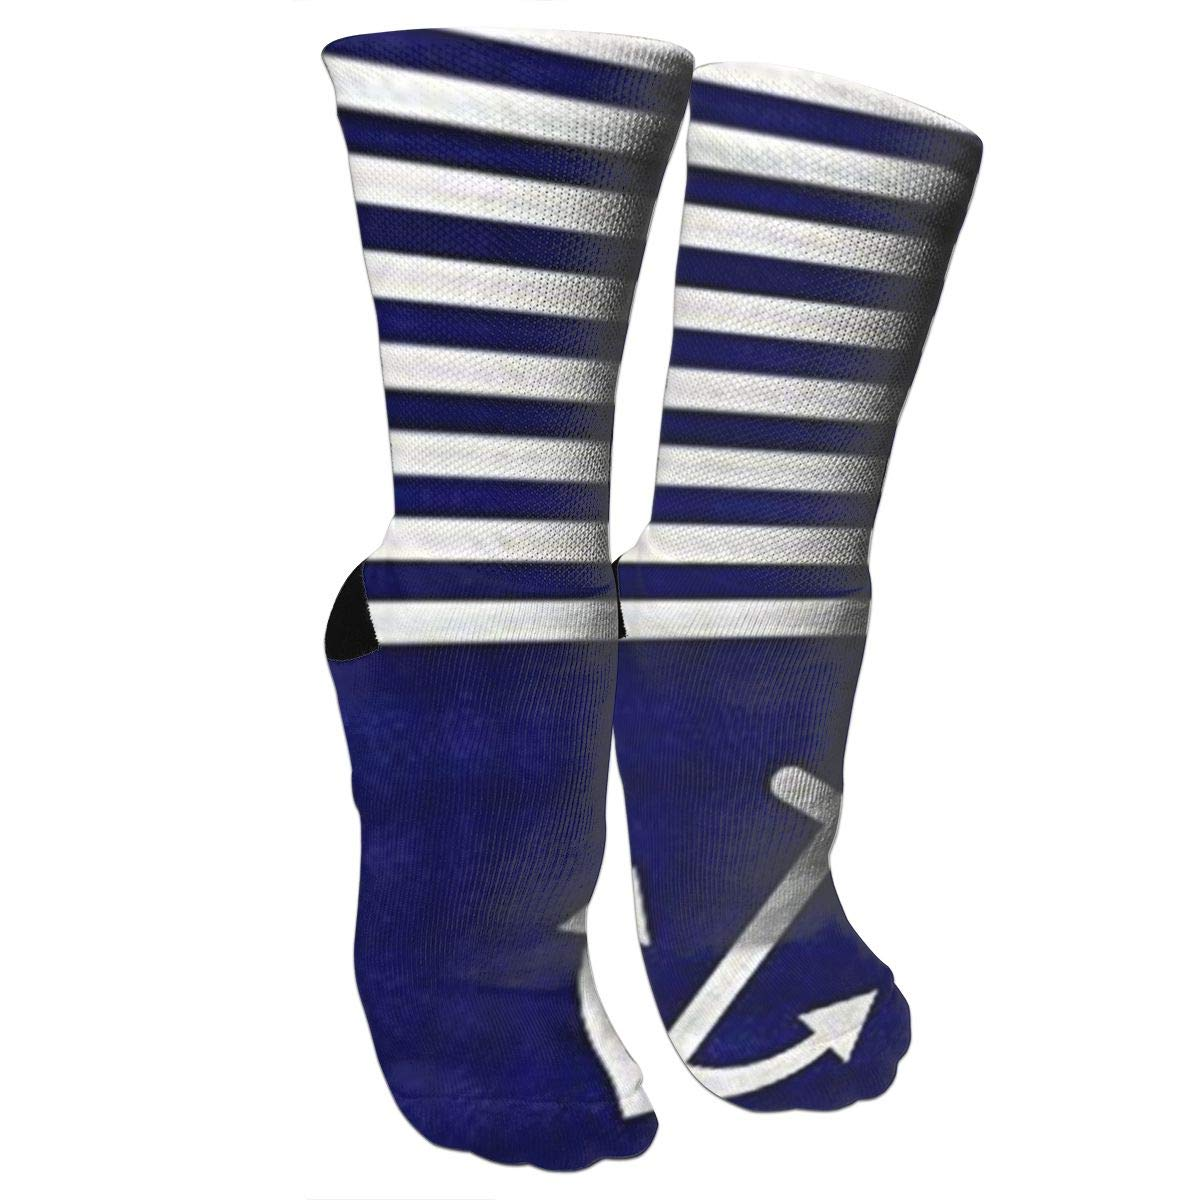 Navy Blue Love Anchor Nautical Compression Socks Unisex Printed Socks Crazy Patterned Fun Long Cotton Socks Over The Calf Tube 619Rm7X5-6L